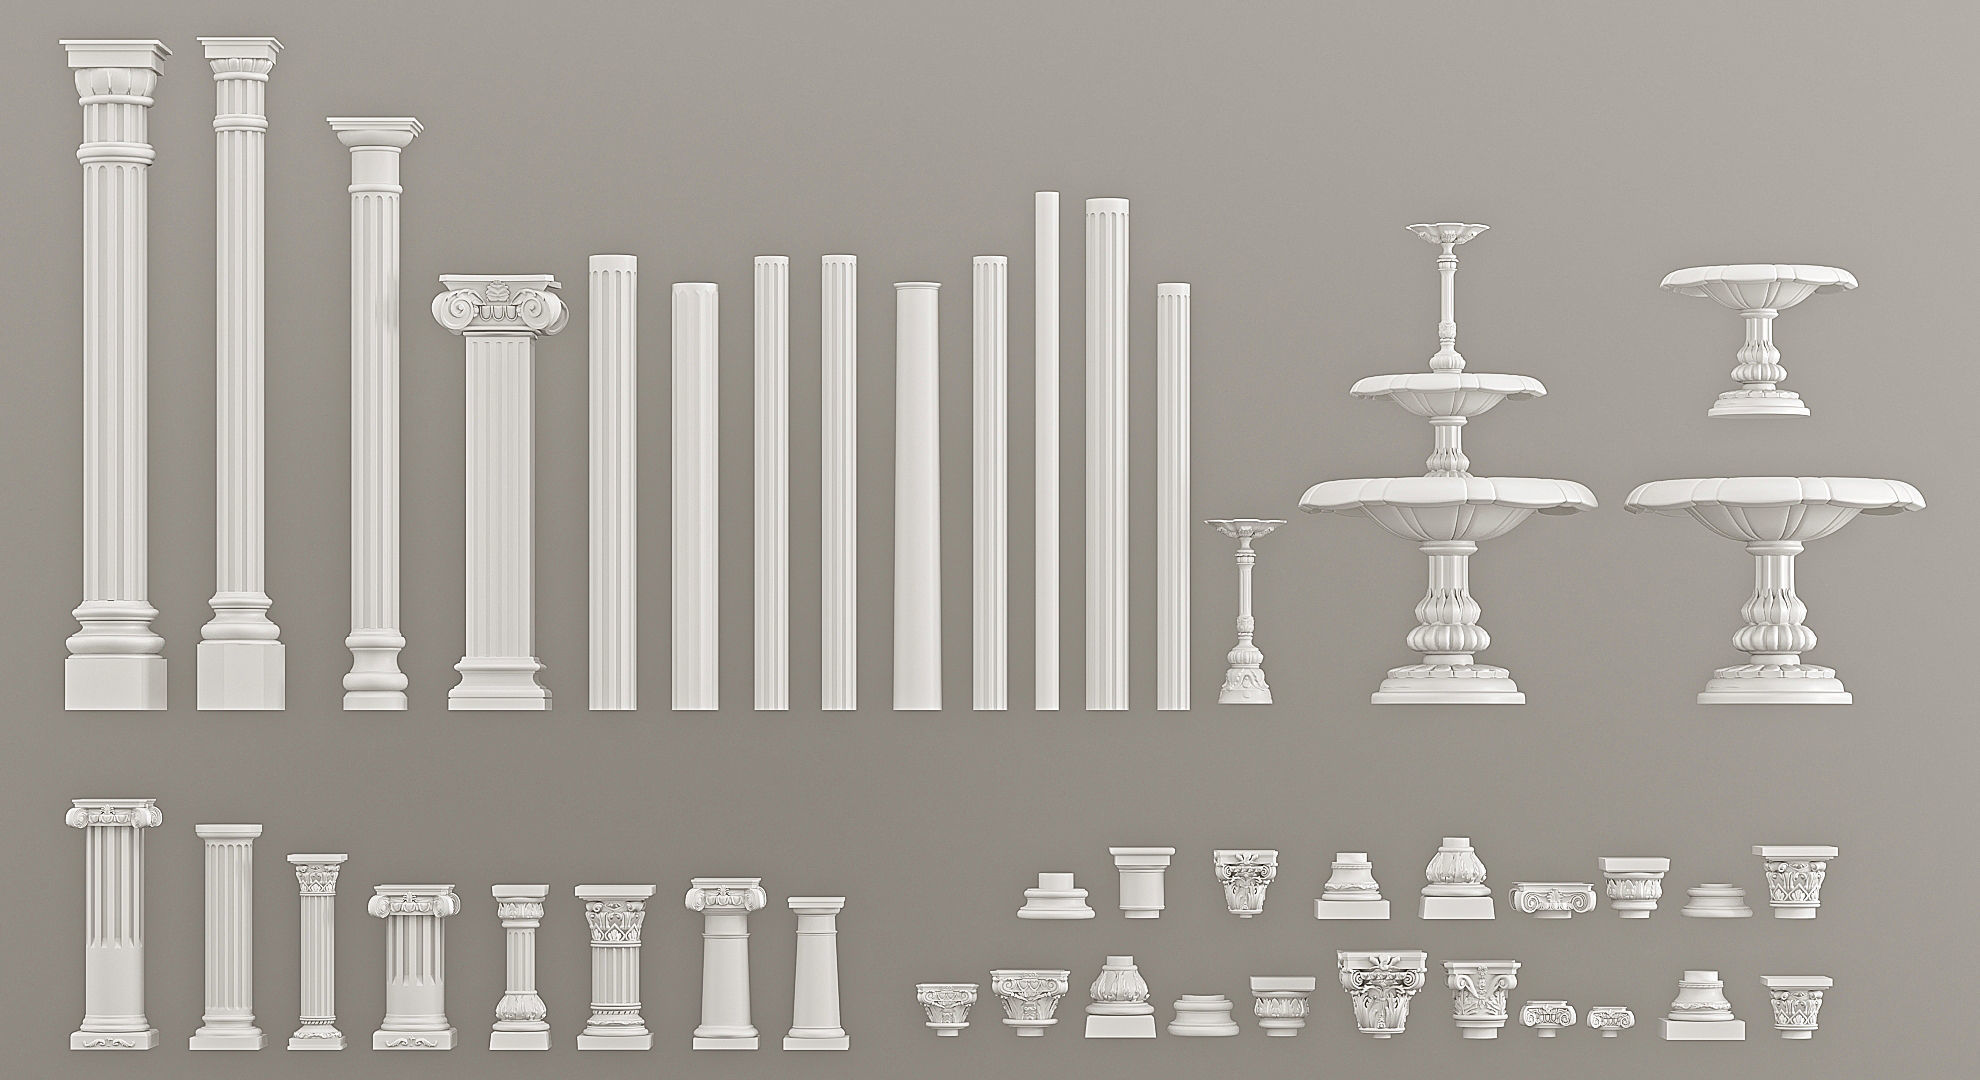 Columns Pedestals Decorative Gaudi Elements 3D model